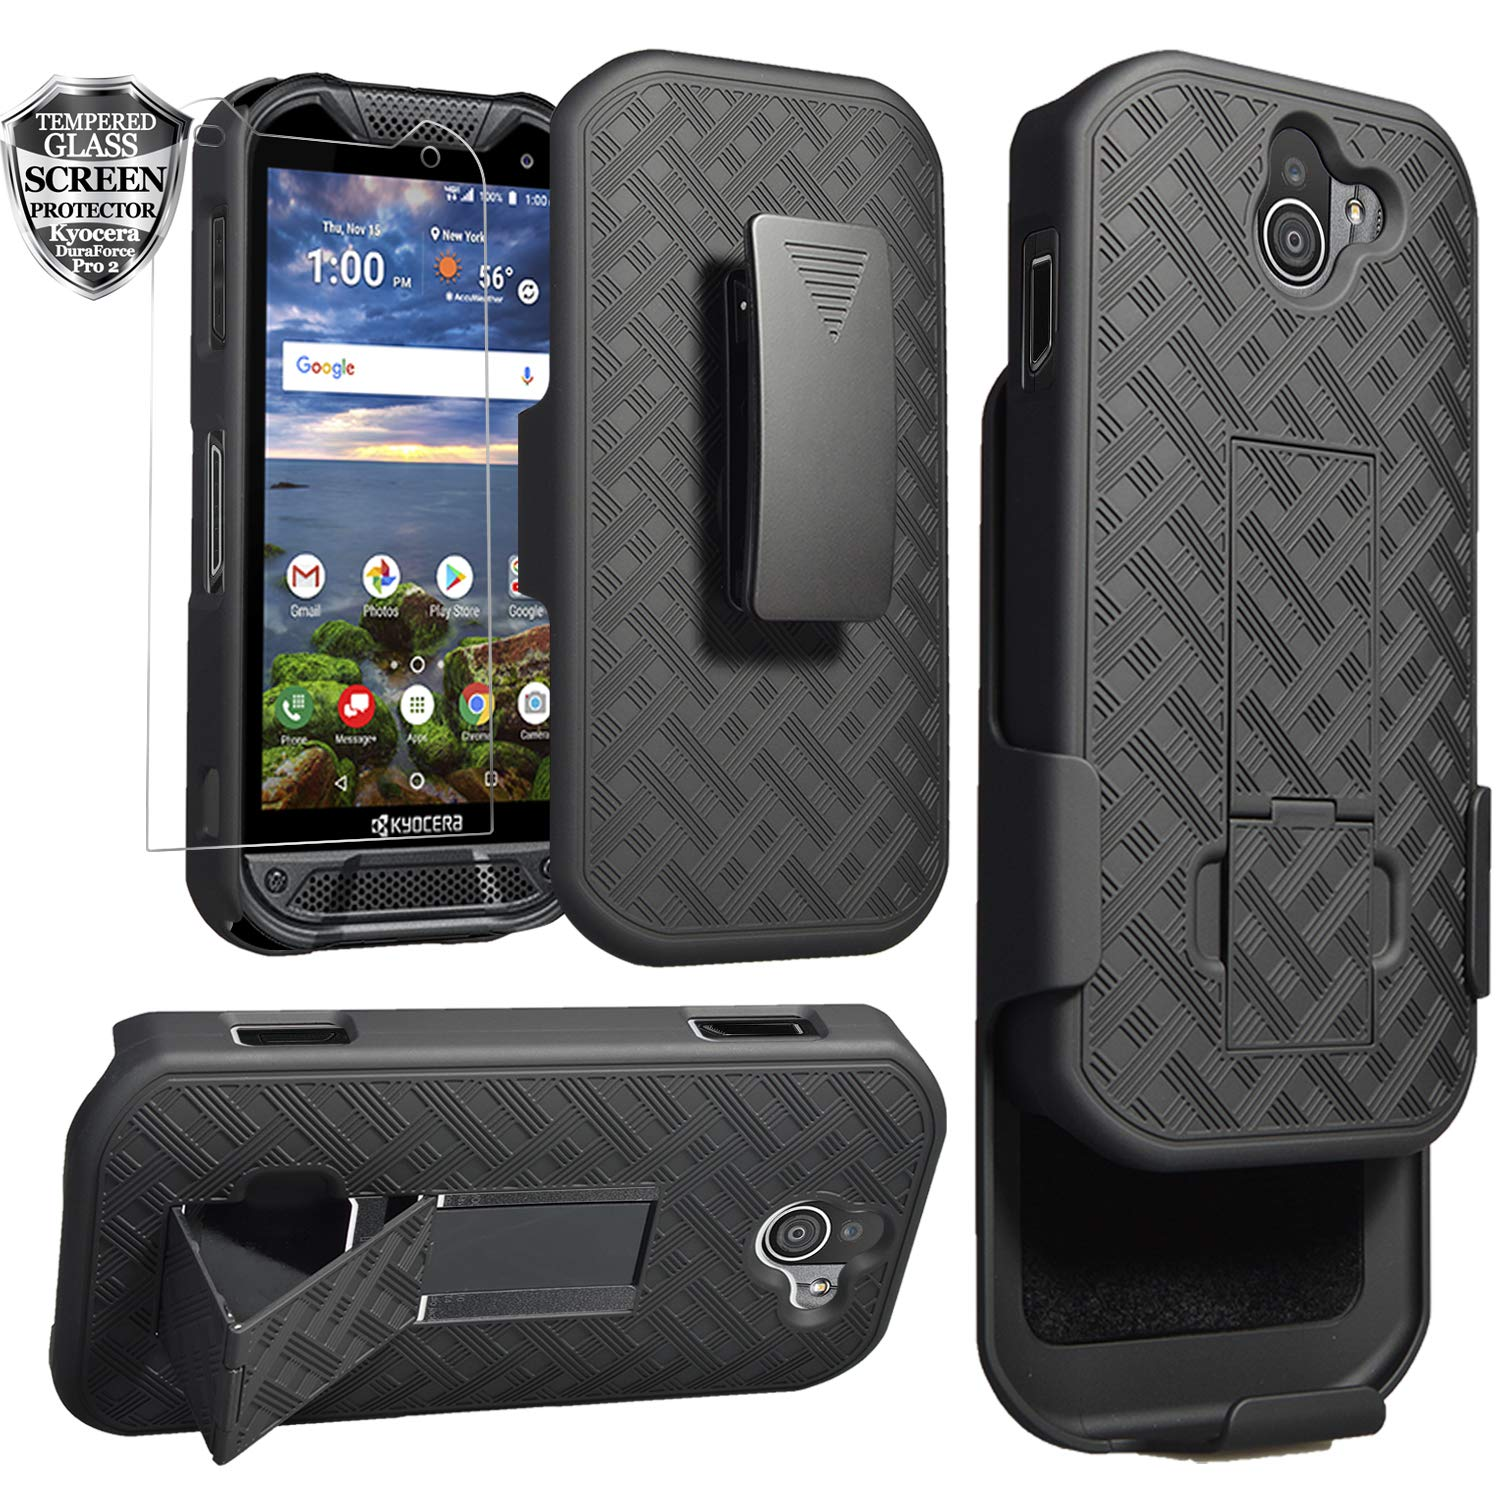 Kyocera DuraForce Pro 2 Case, Ailiber E6910 Holster with Screen Protector,  Swivel Belt Clip, Kickstand Holder, Shock Proof Pouch Slim Shell Slide